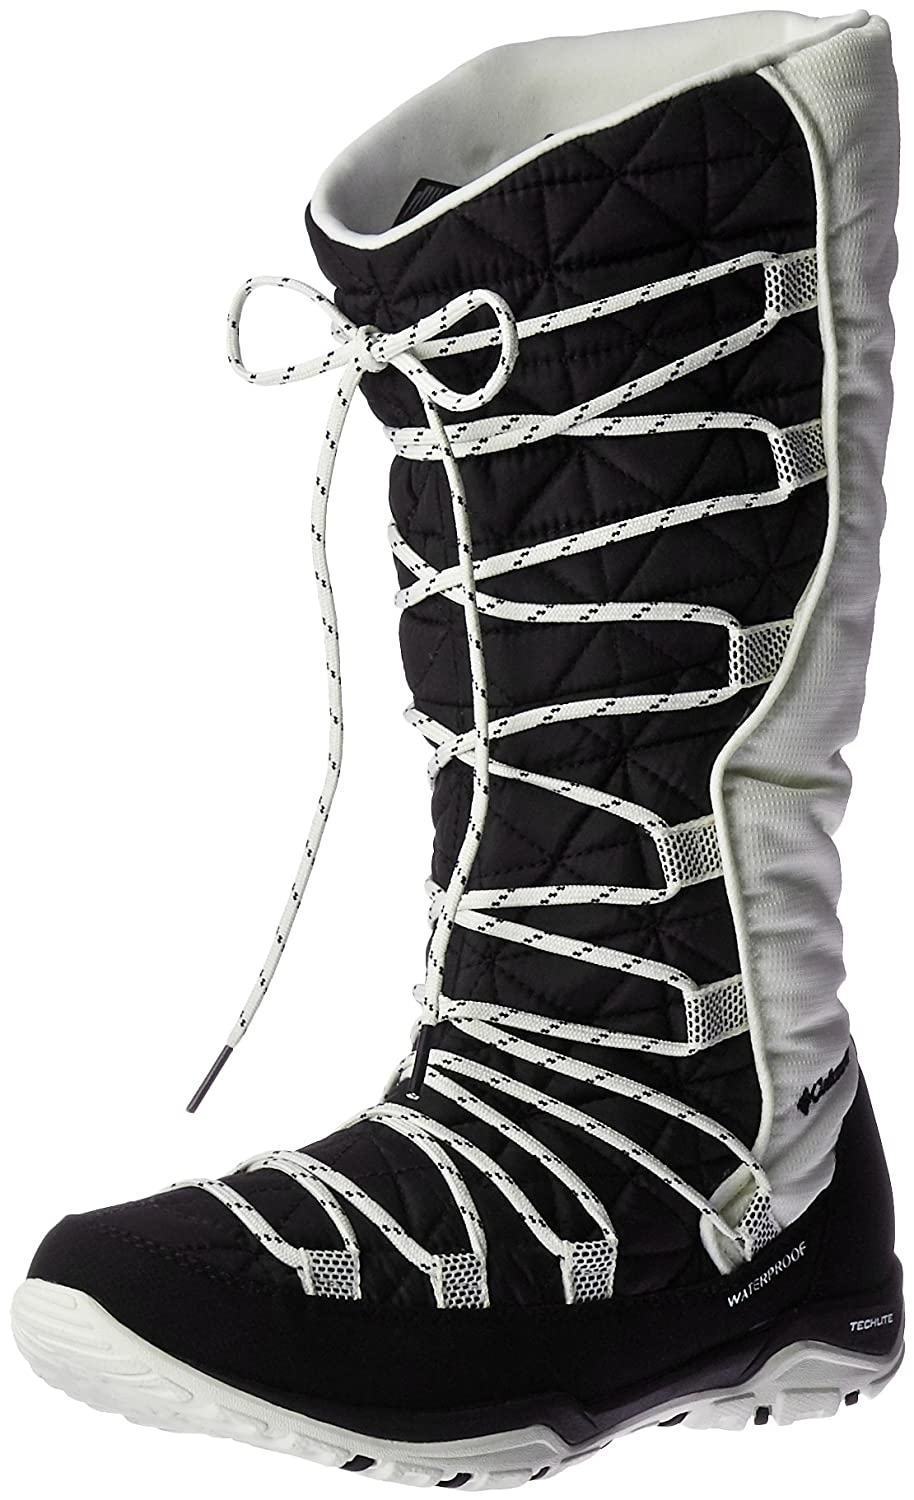 Columbia Women's Loveland Omni-Heat Snow Boot B0183O1D64 10 B(M) US|Black/Sea Salt